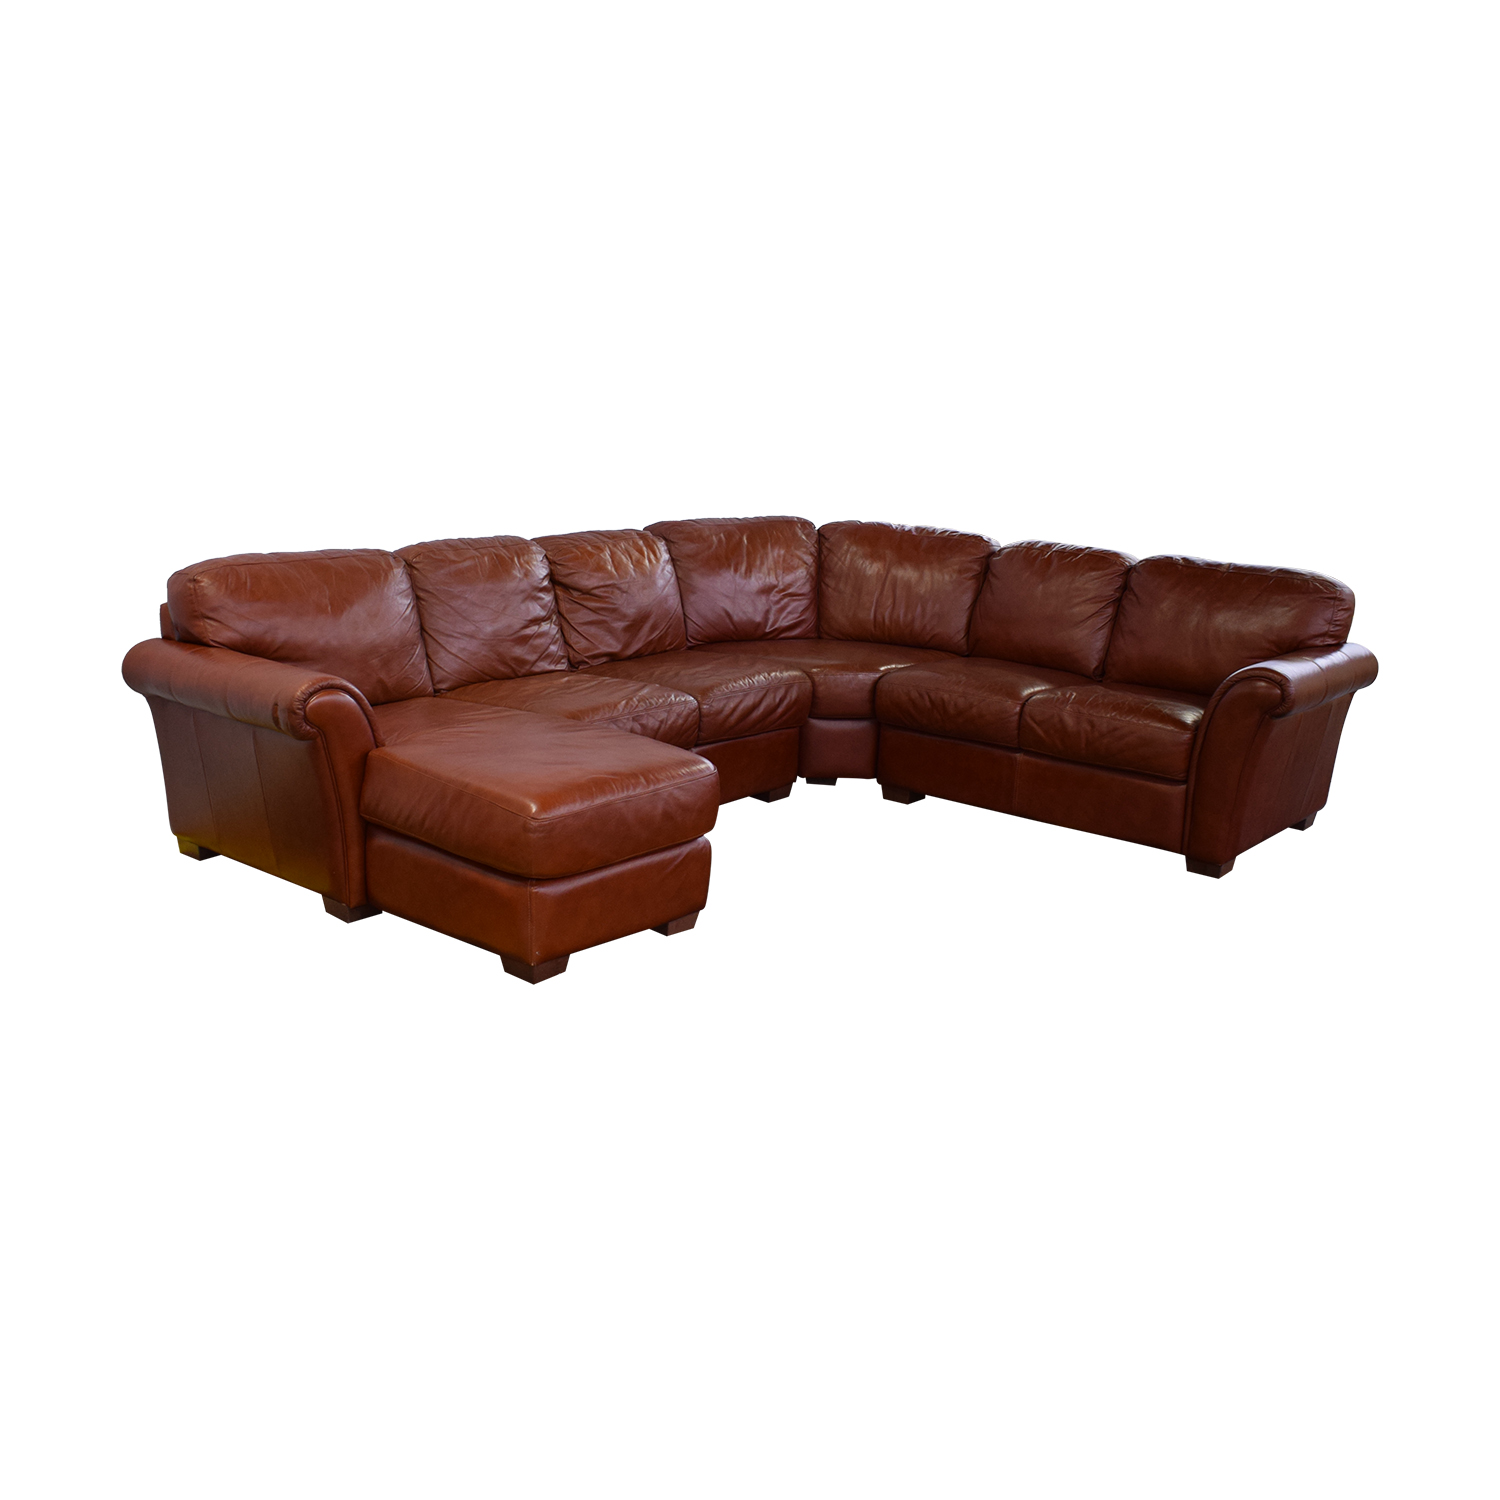 47% OFF - Chateau d'Ax Chateau d'Ax Leather Sectional / Sofas